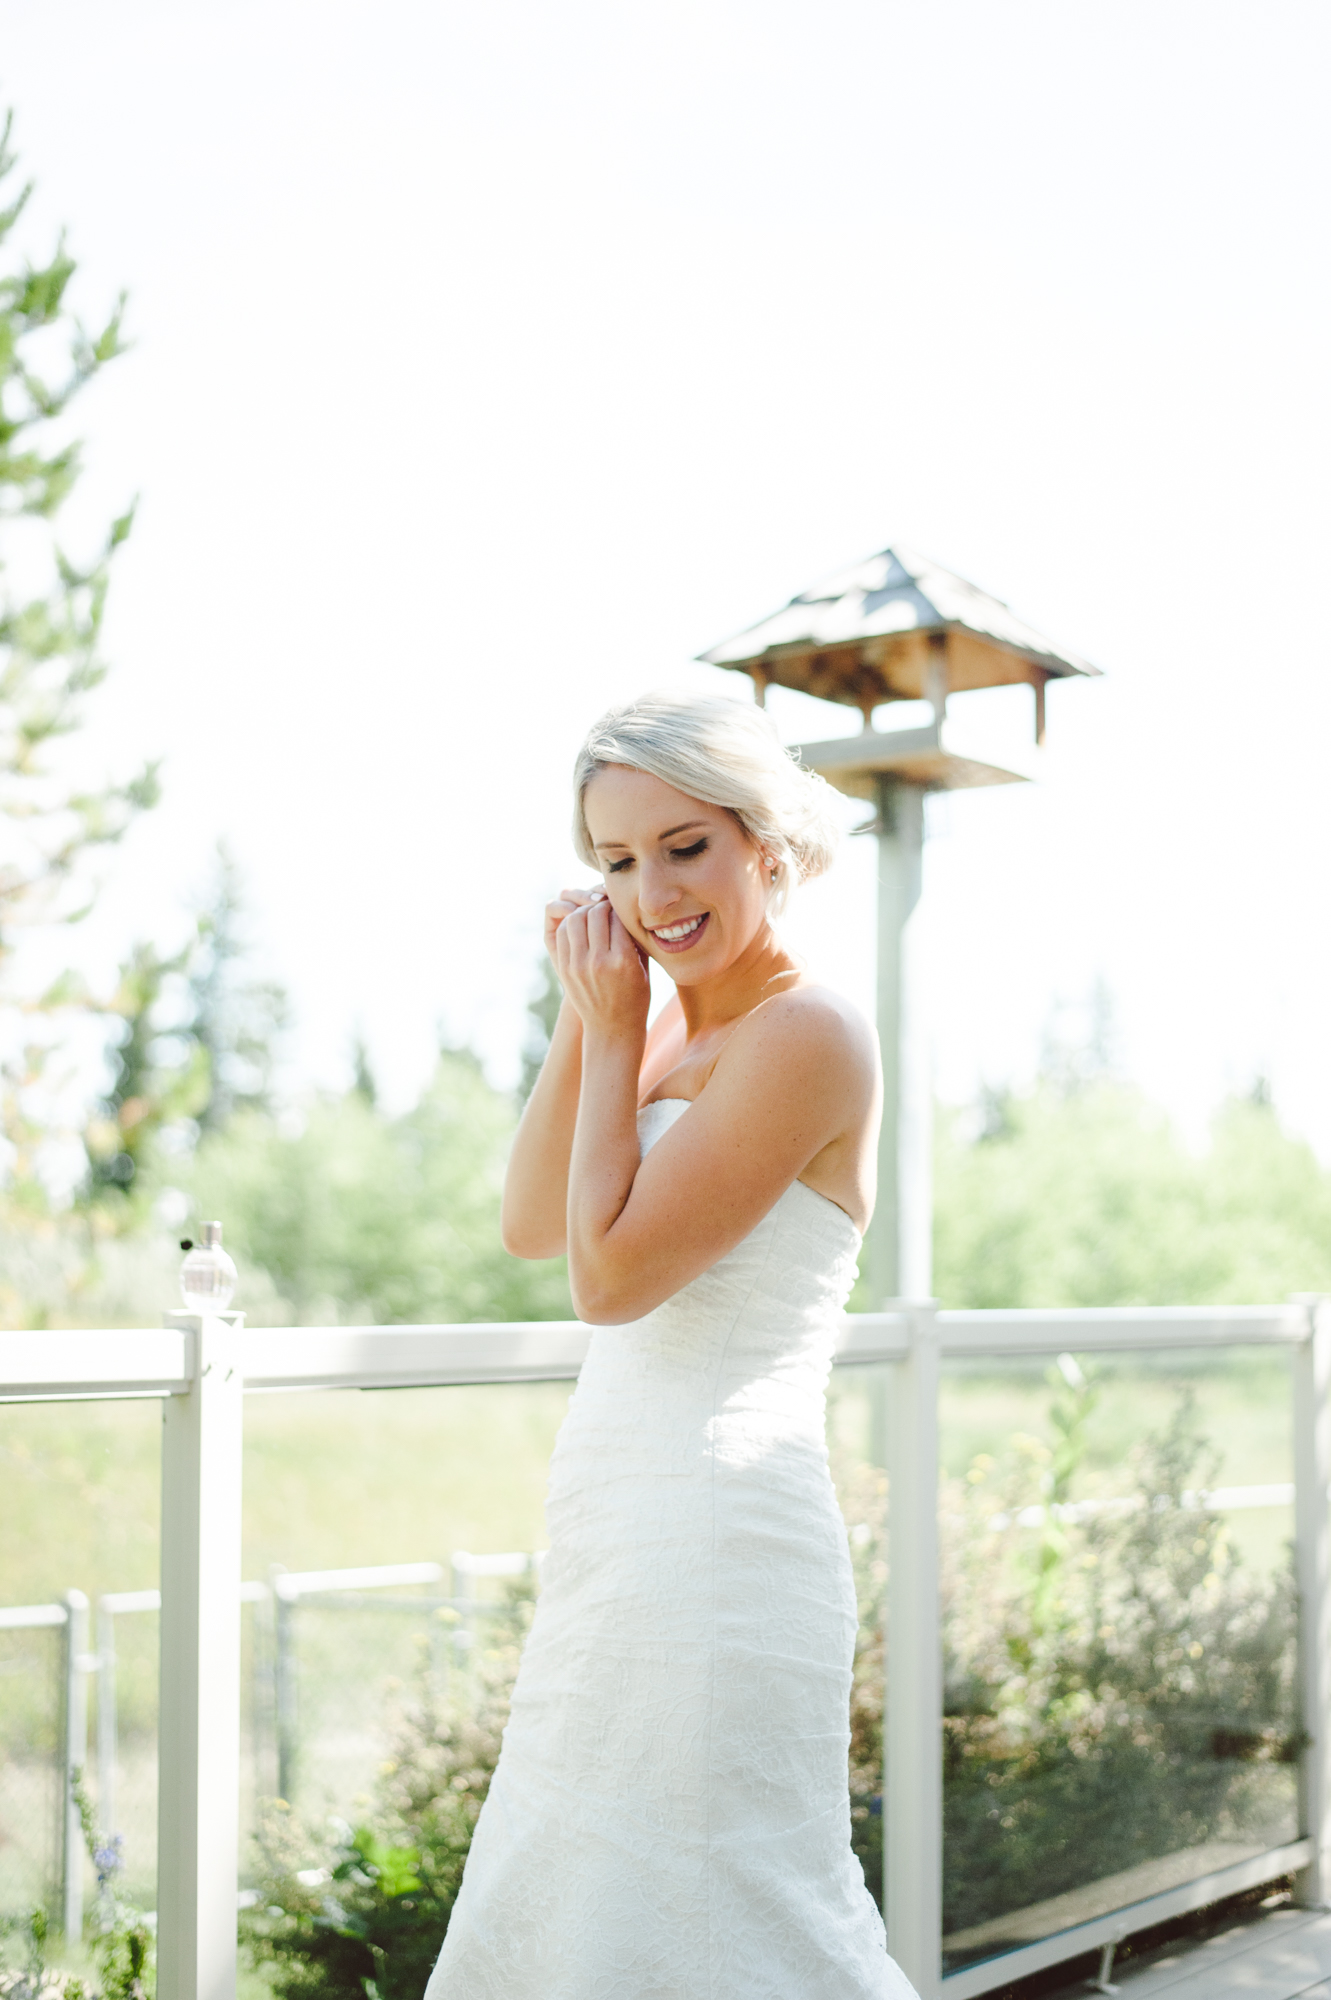 Rocky Mountain Banff Calgary Alberta Wedding-Jessika Hunter Photo-21.JPG